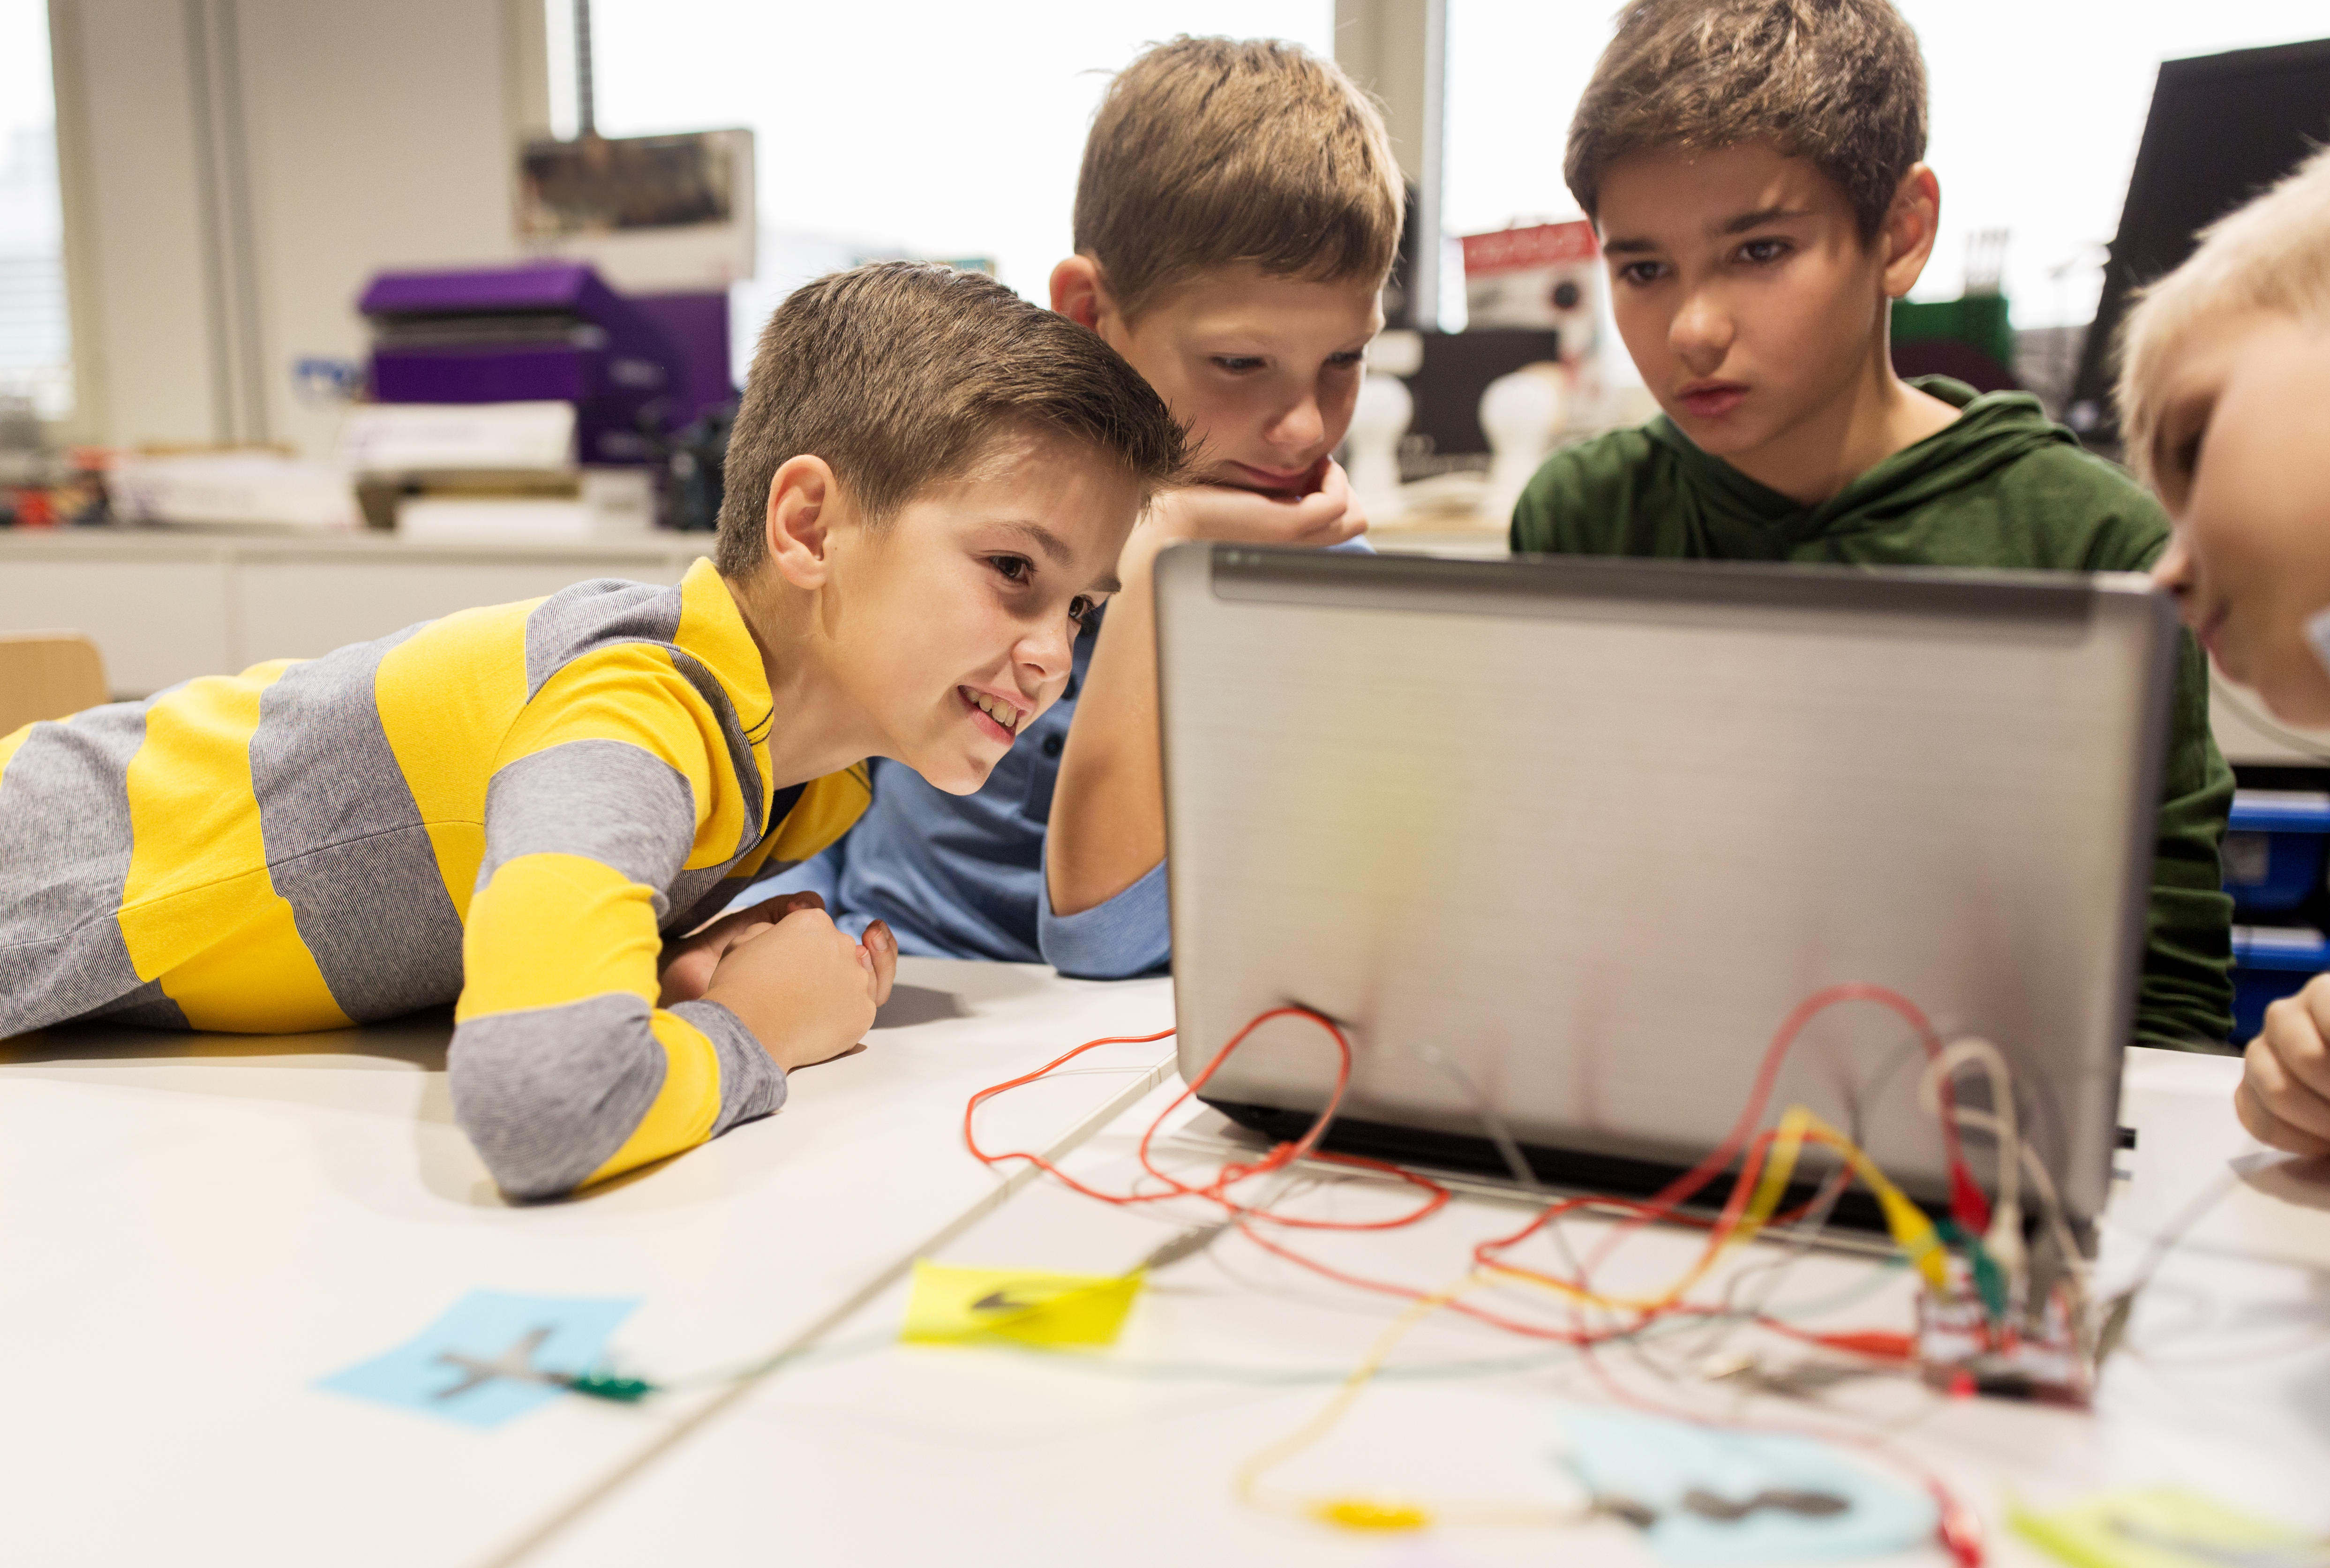 education, children, technology, science and people concept - group of happy kids with laptop comput